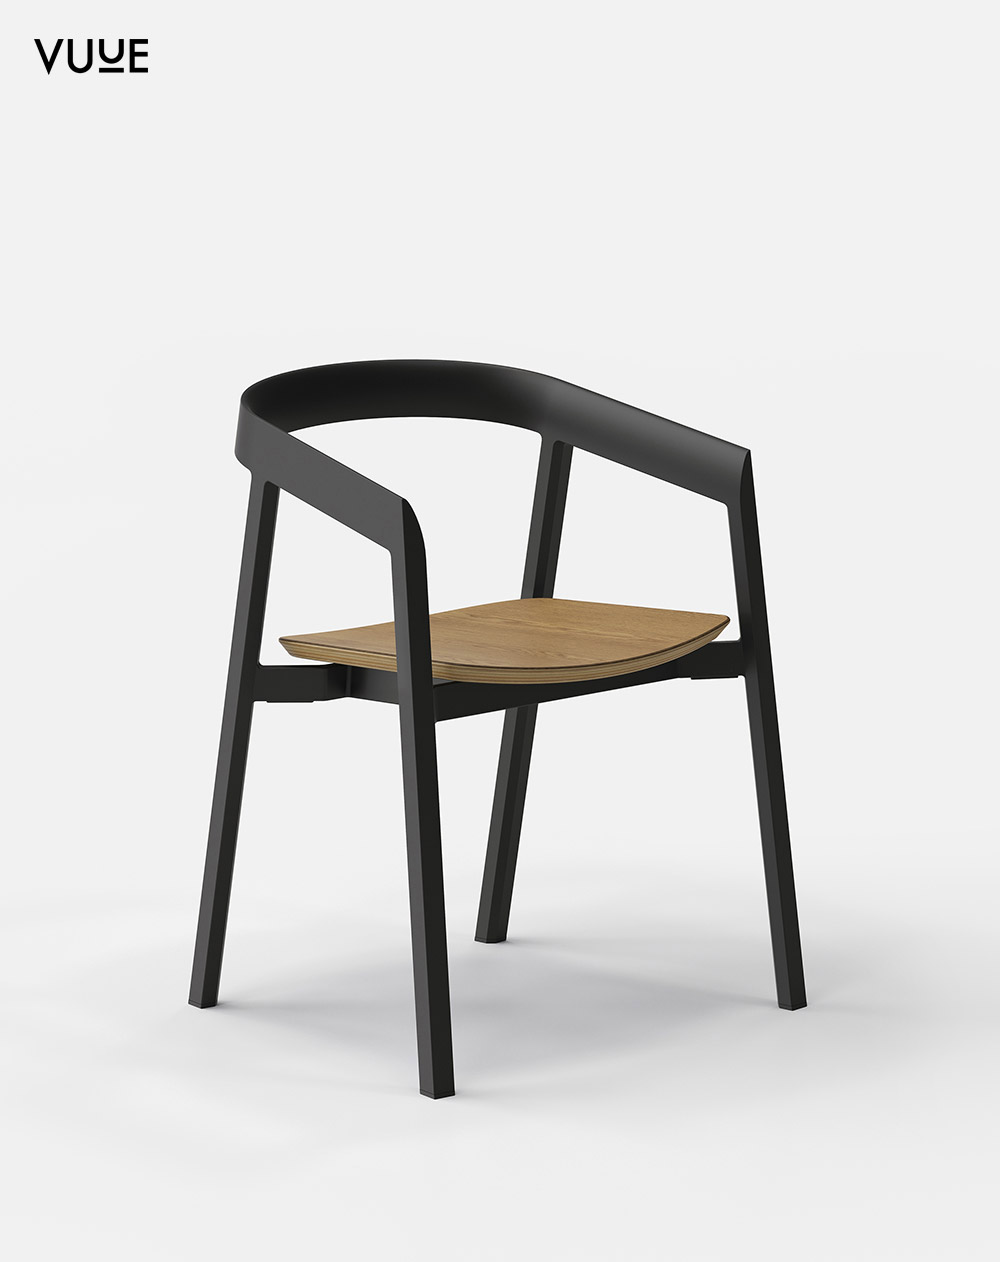 2_vuue_morningtondiningchair_graphitecolournaturaloakveneerseat